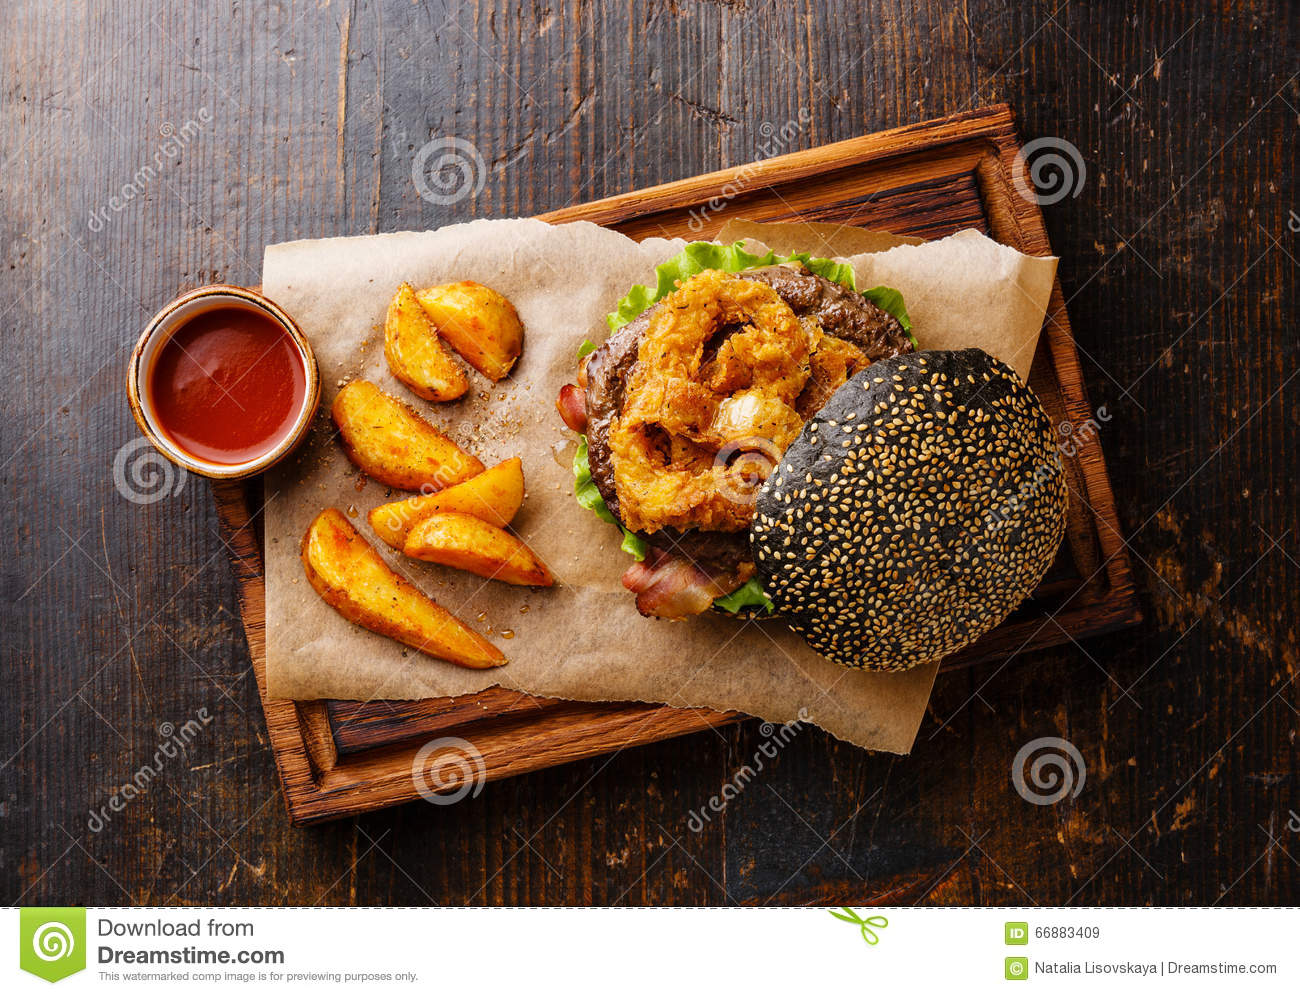 Background Bacon Black Bun Burger Dark Fries Meat Onion Potato